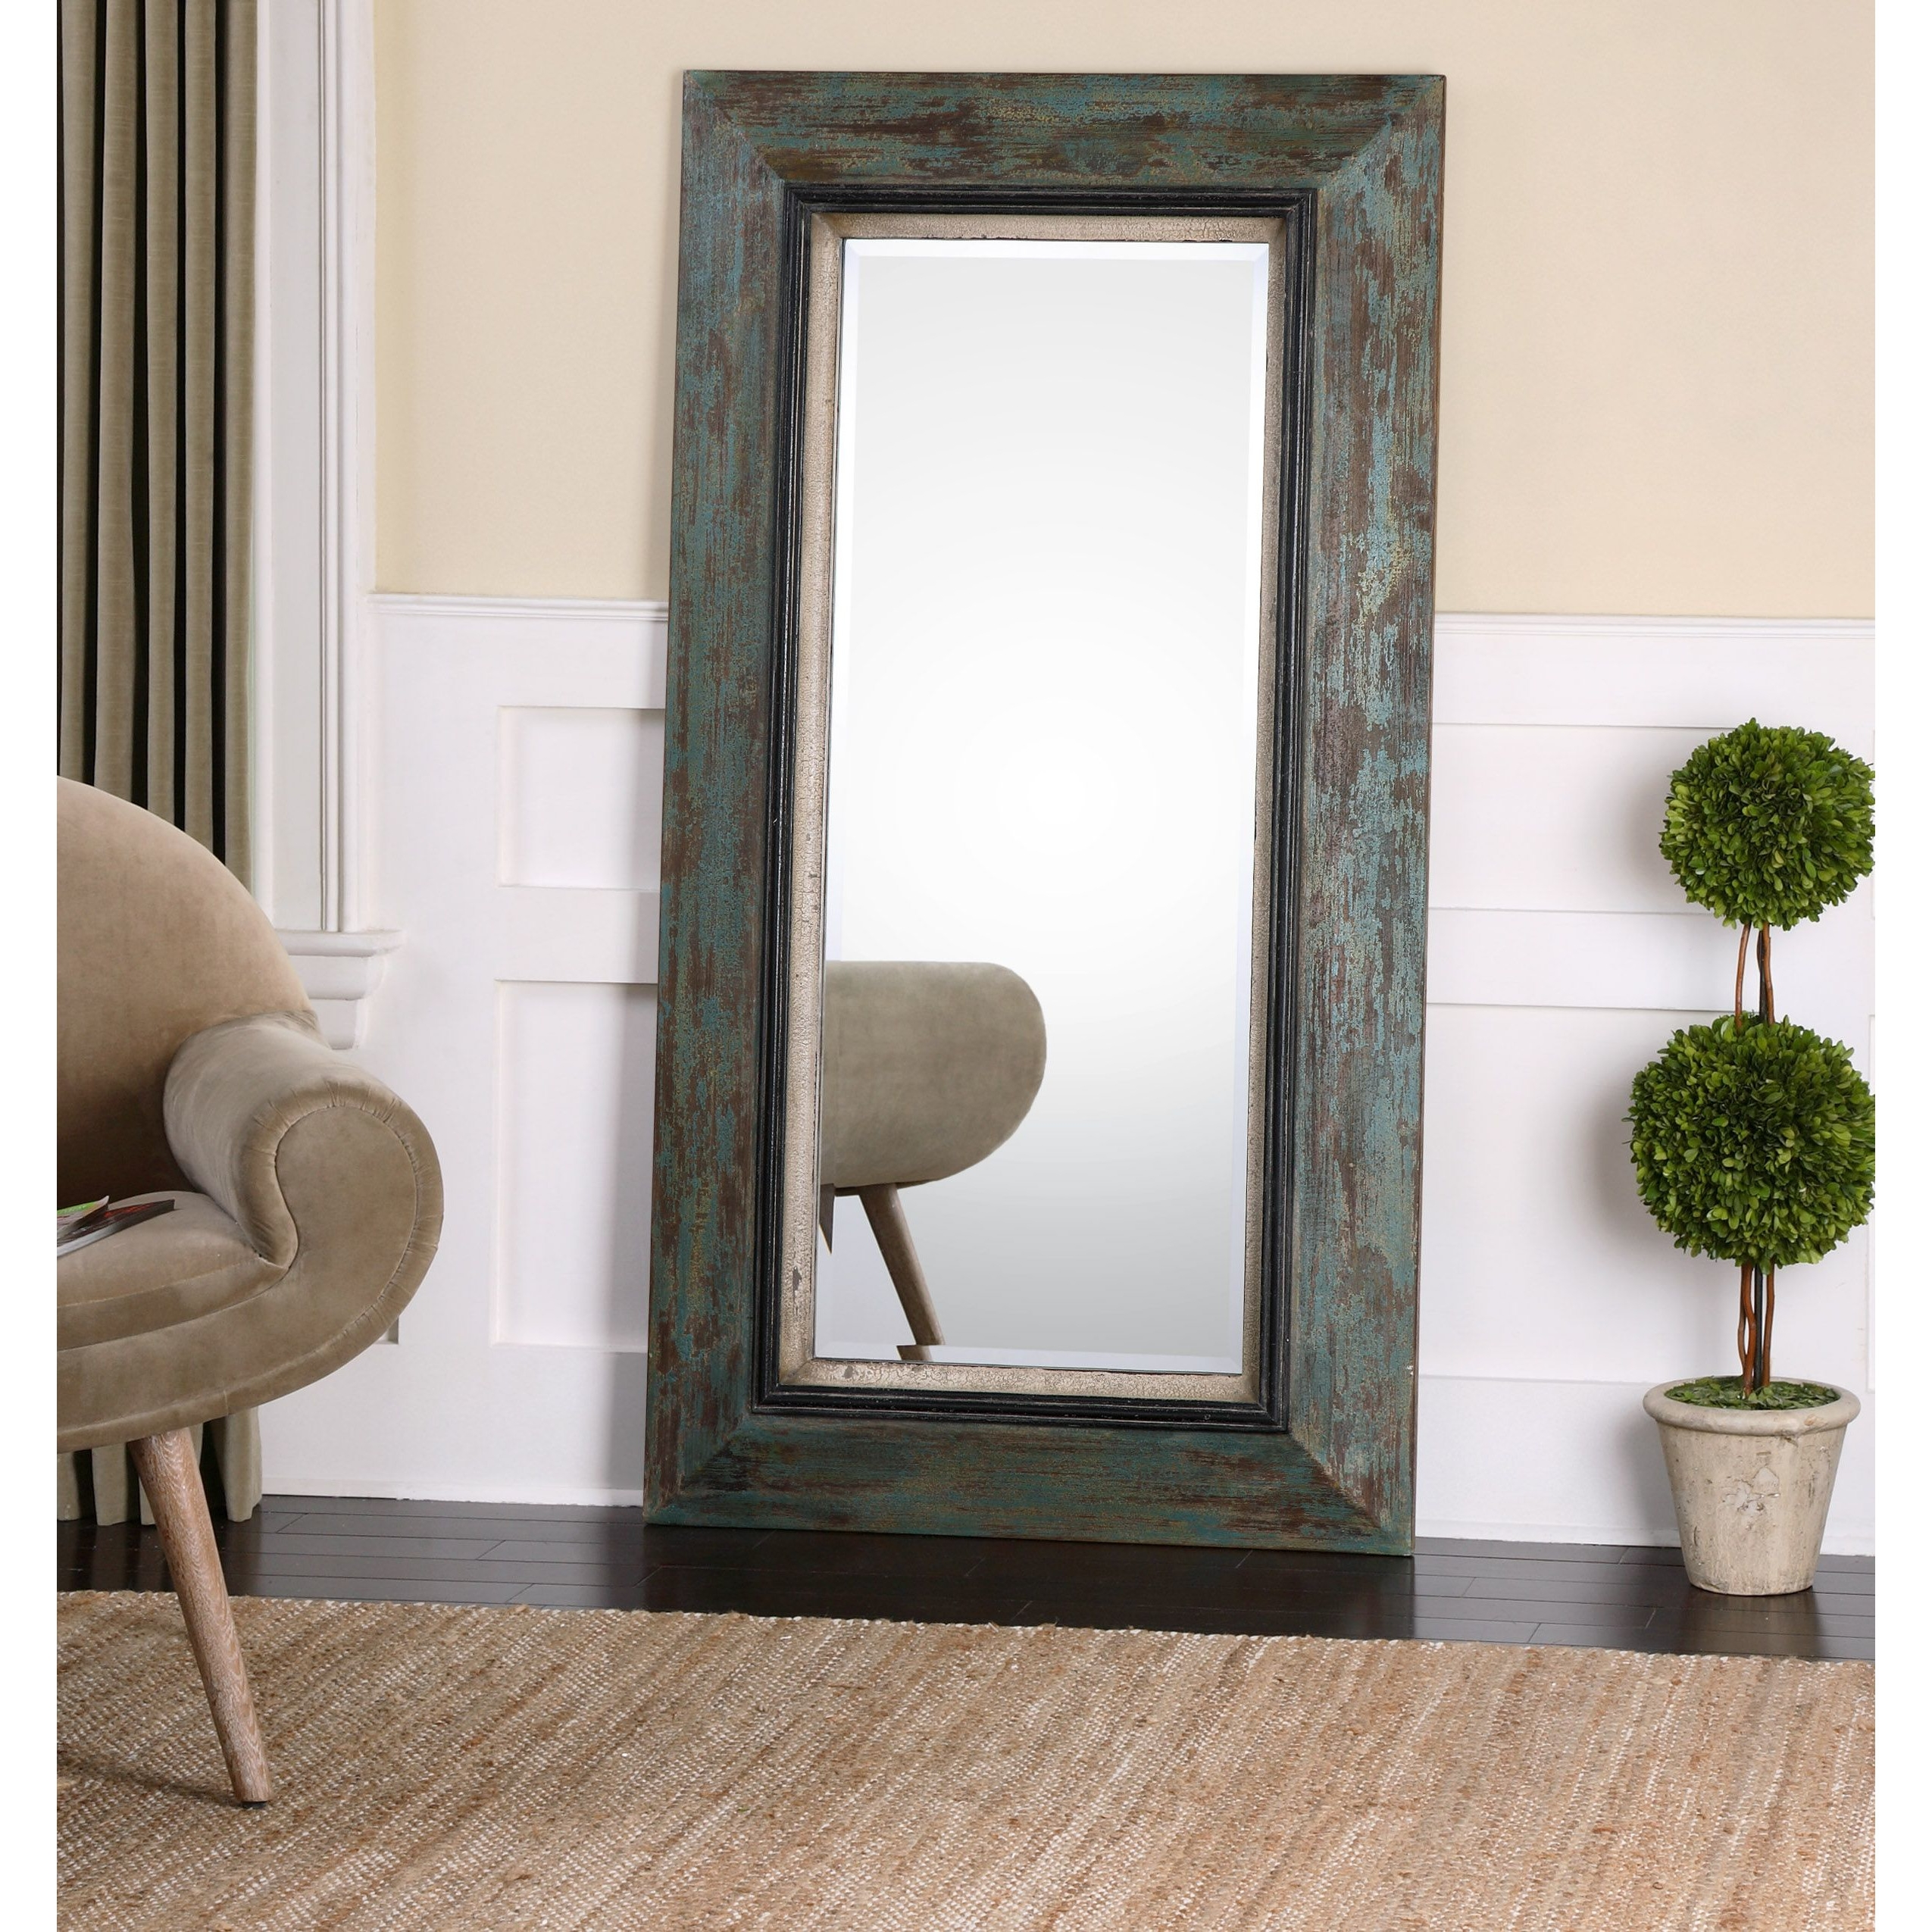 Large Floor Mirror Medium Size Of Mirror Ikea Furniture Mirrors Pertaining To Large Floor Length Mirror (Image 13 of 15)